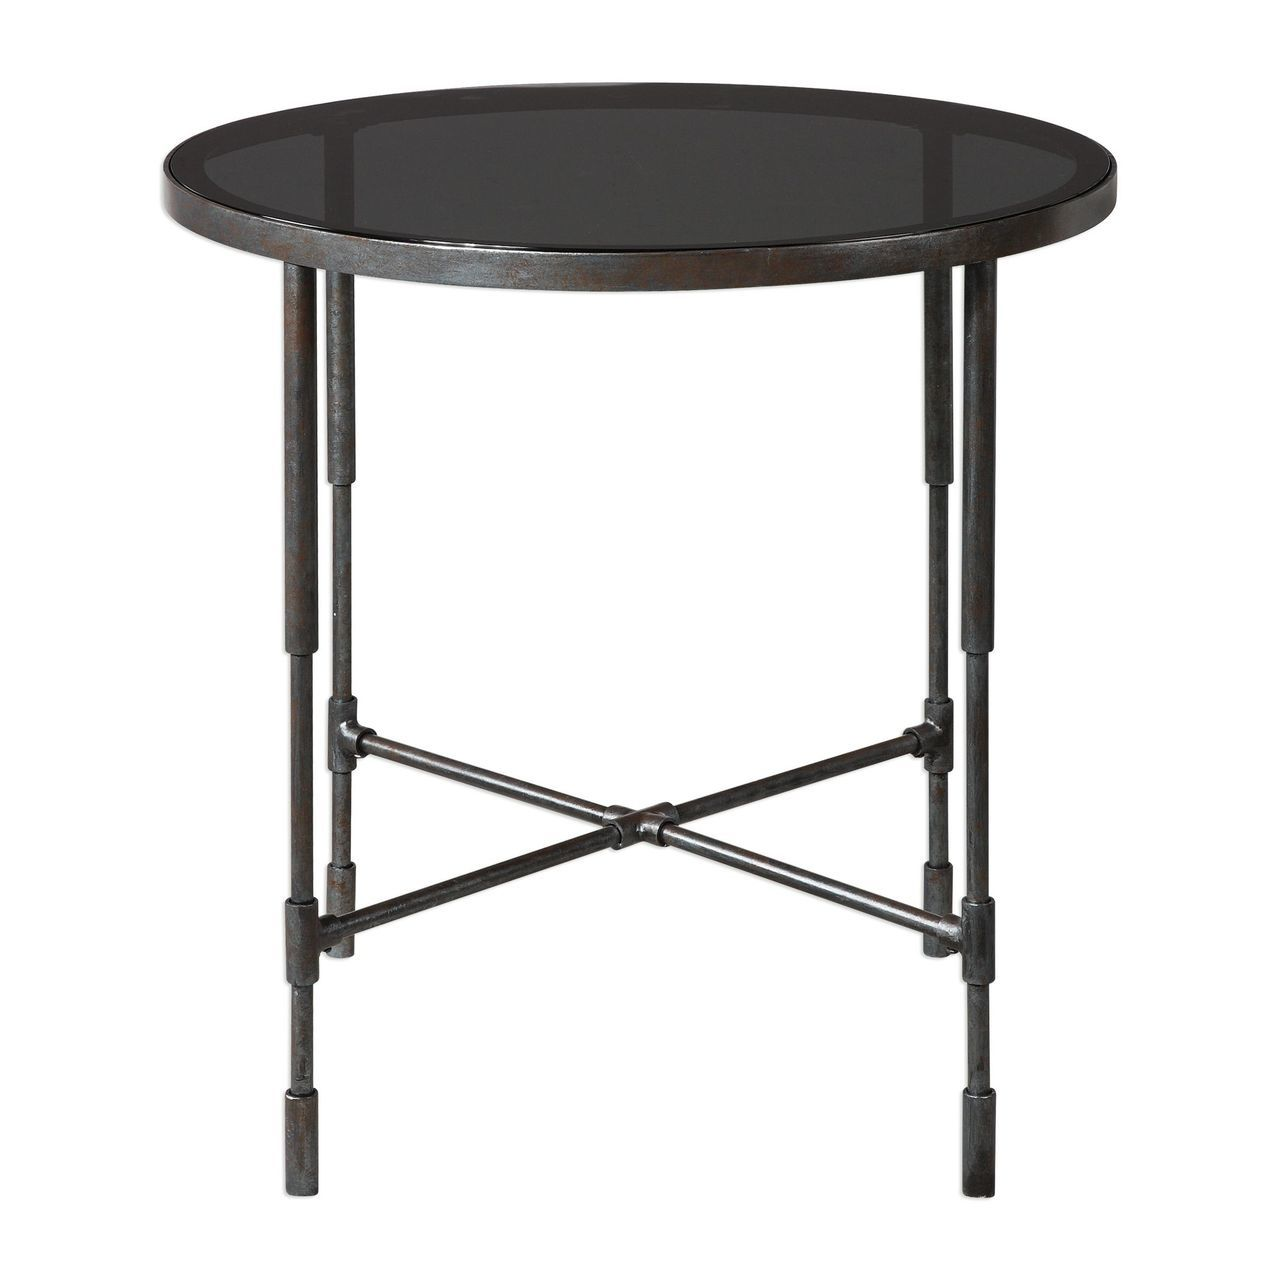 industrial mini rustic metal accent table round pipe fitting retro swanky home coffee tables melbourne wrought iron patio lucite stacking nate berkus gold side large grey lamp